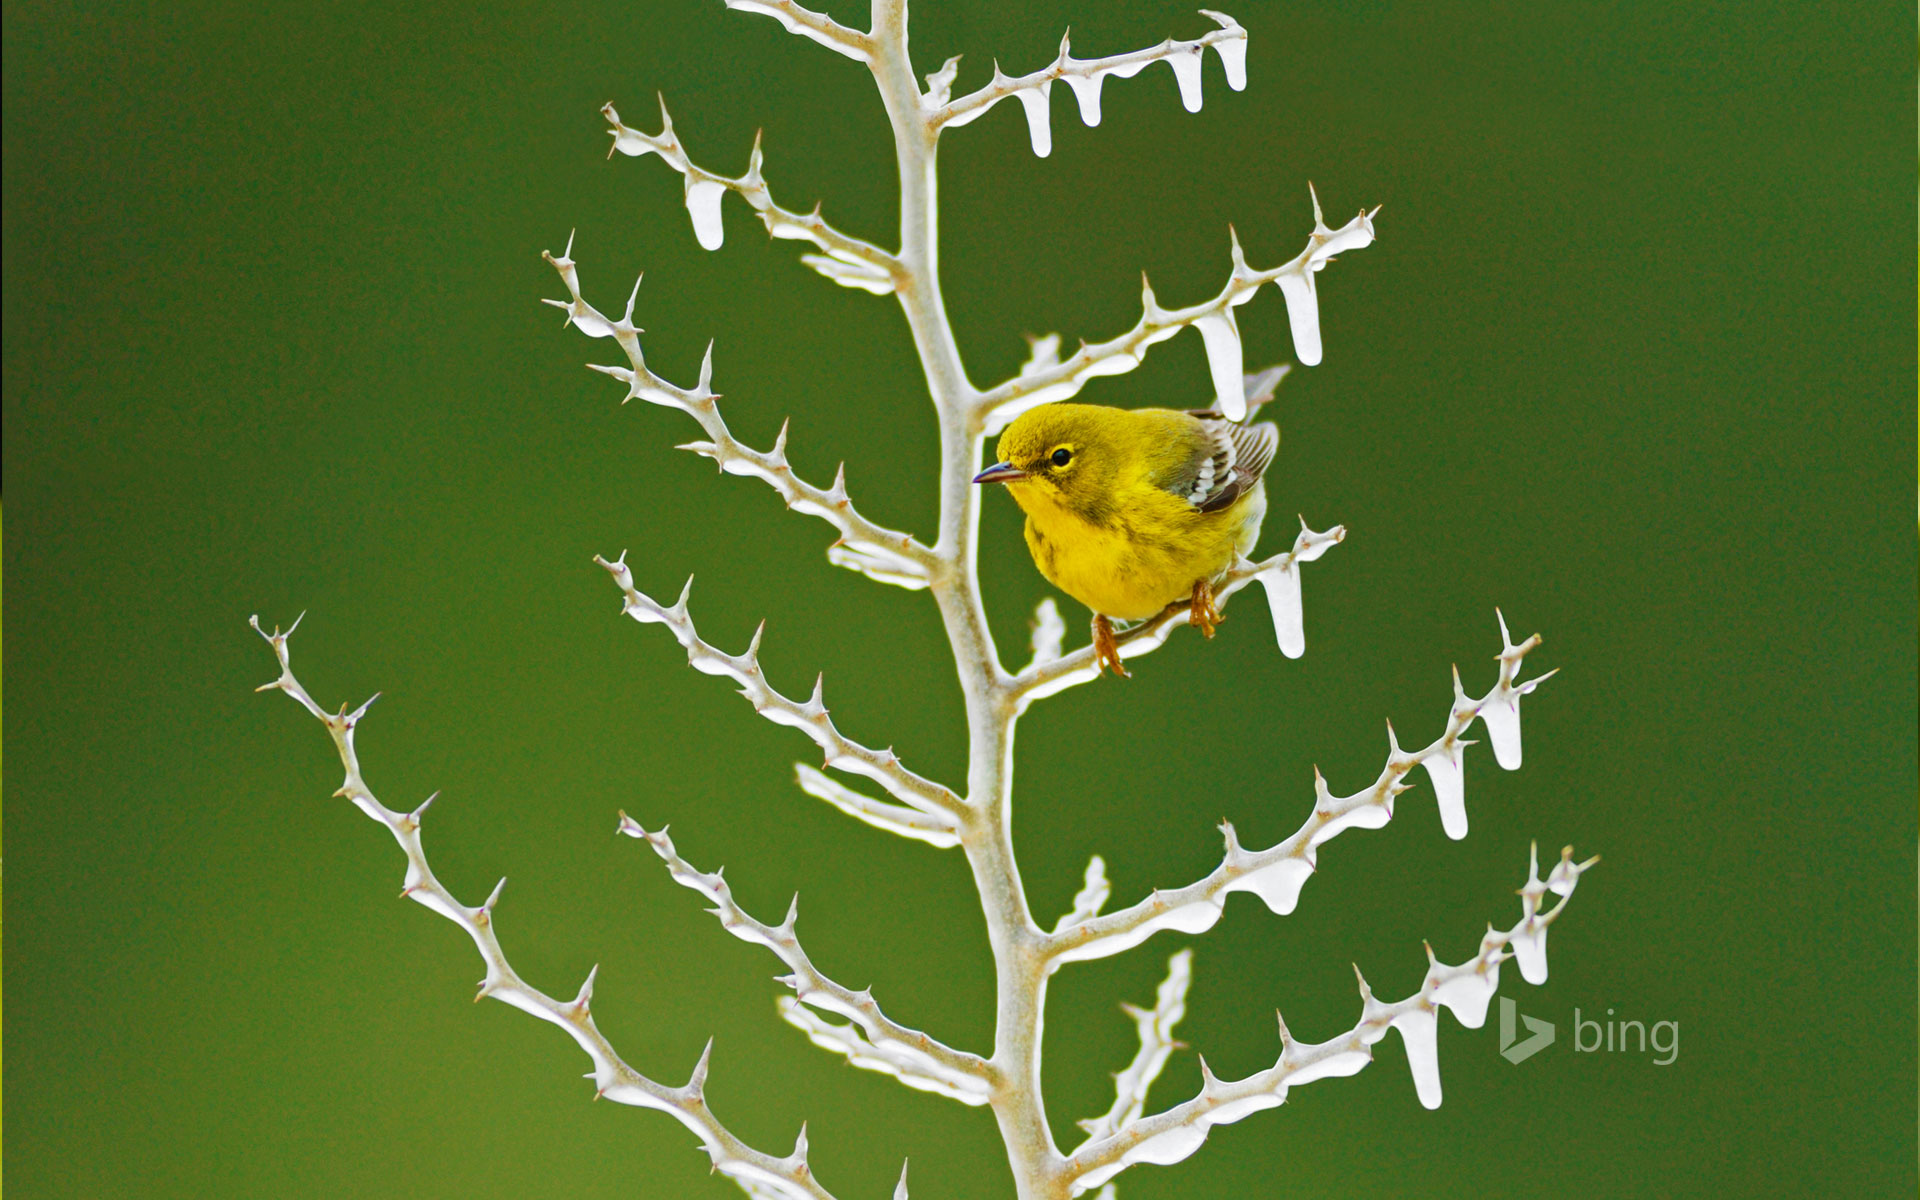 A male pine warbler perched on an icy branch